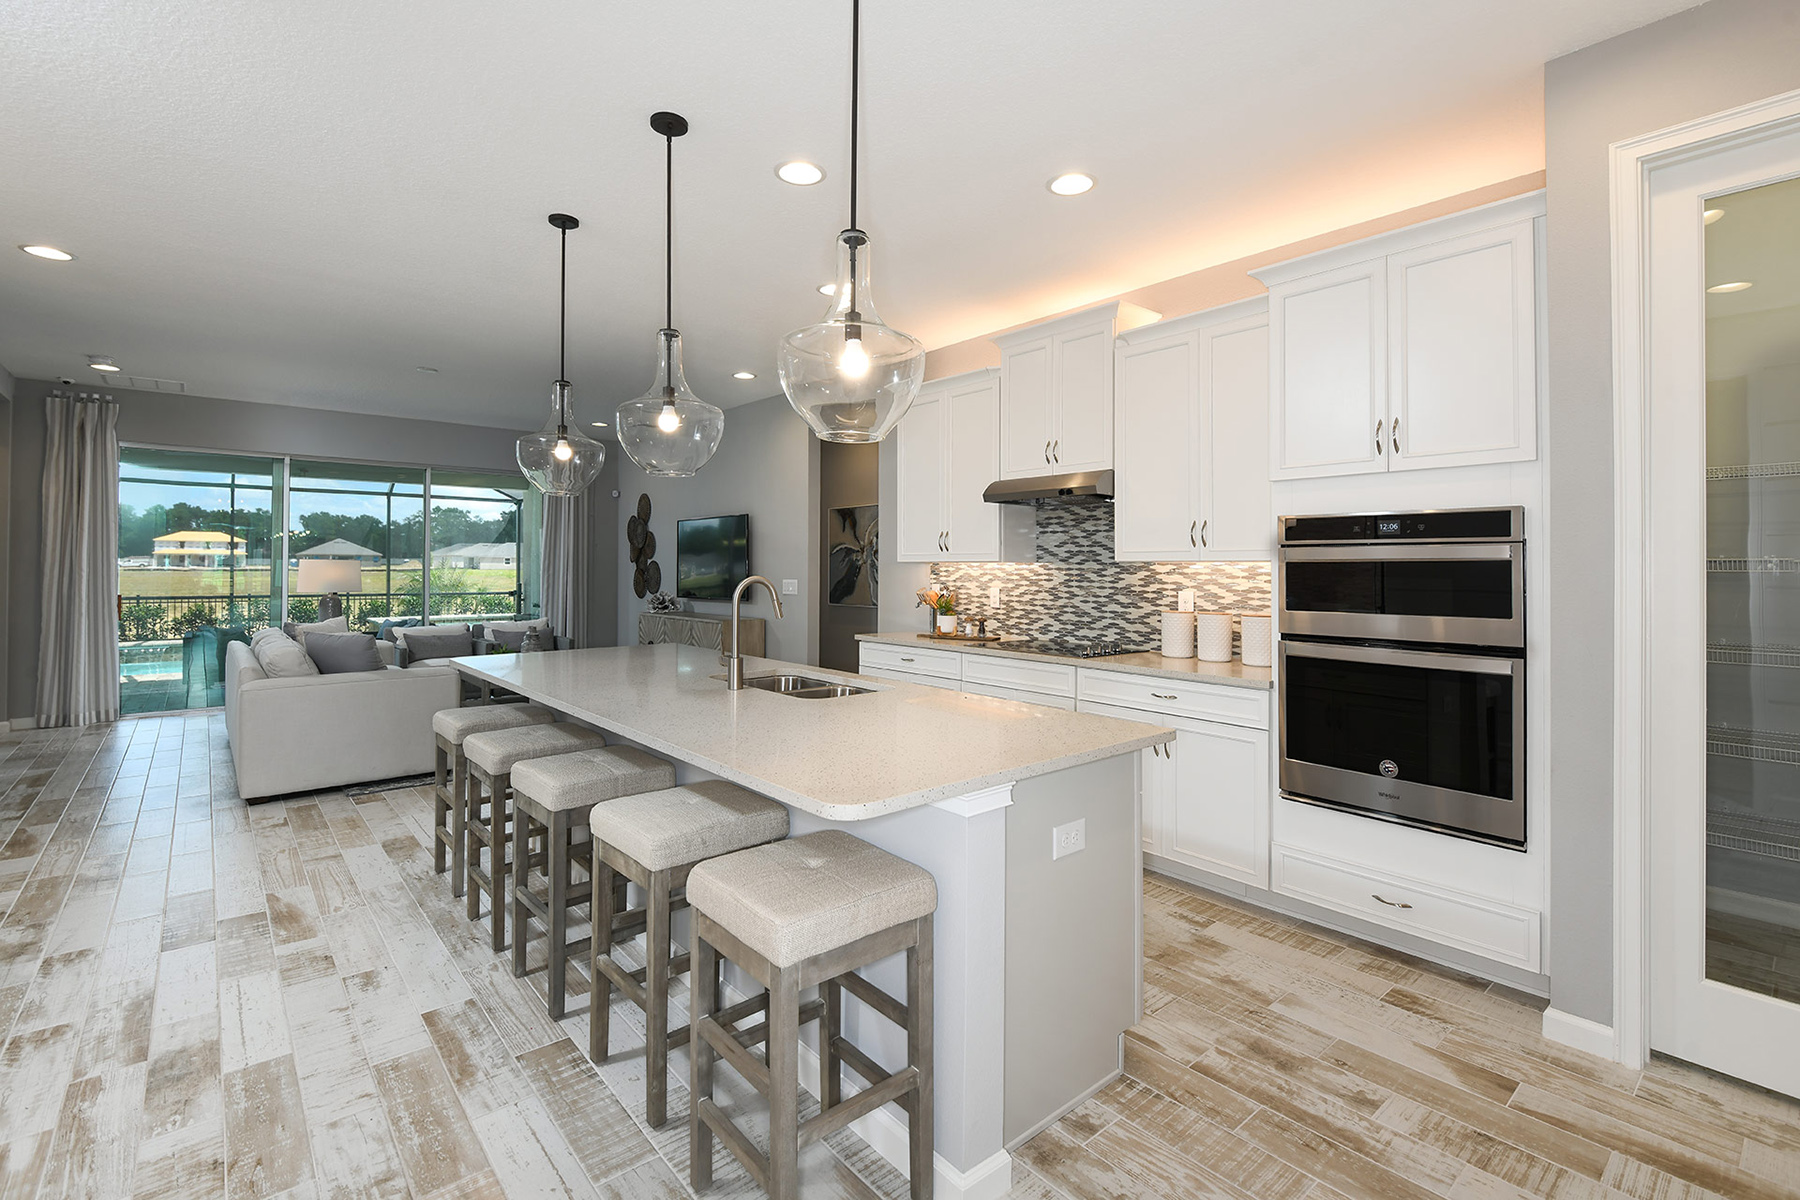 Coquina II Plan Kitchen at Compass Landing in Naples Florida by Mattamy Homes